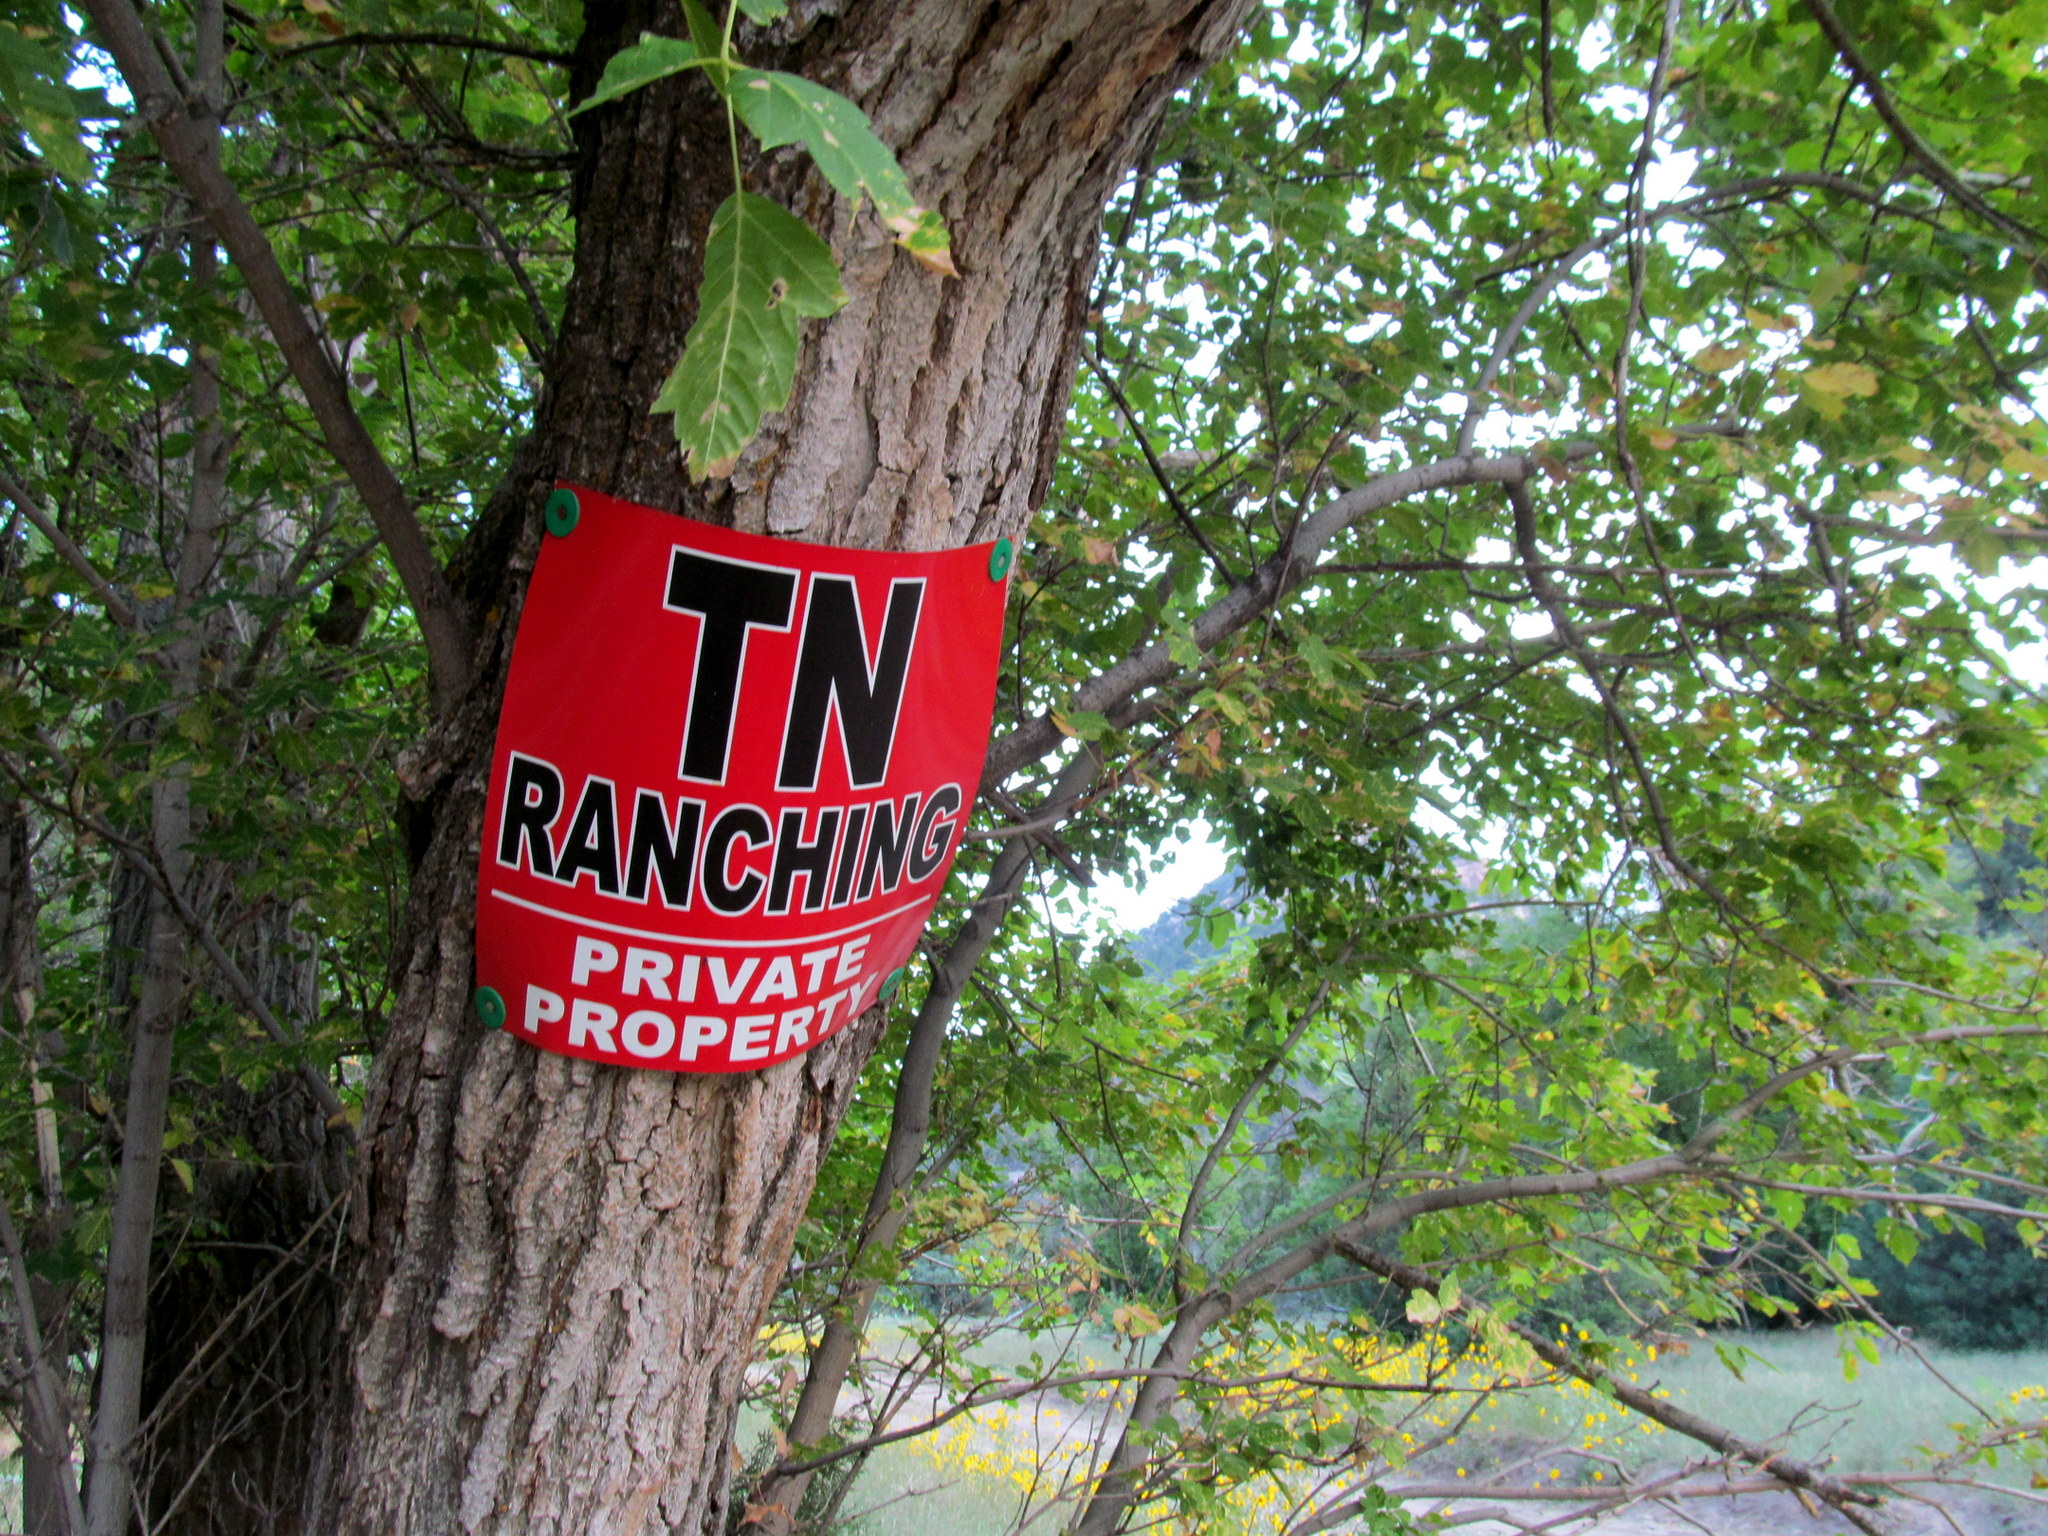 Photo: TN Ranching sign